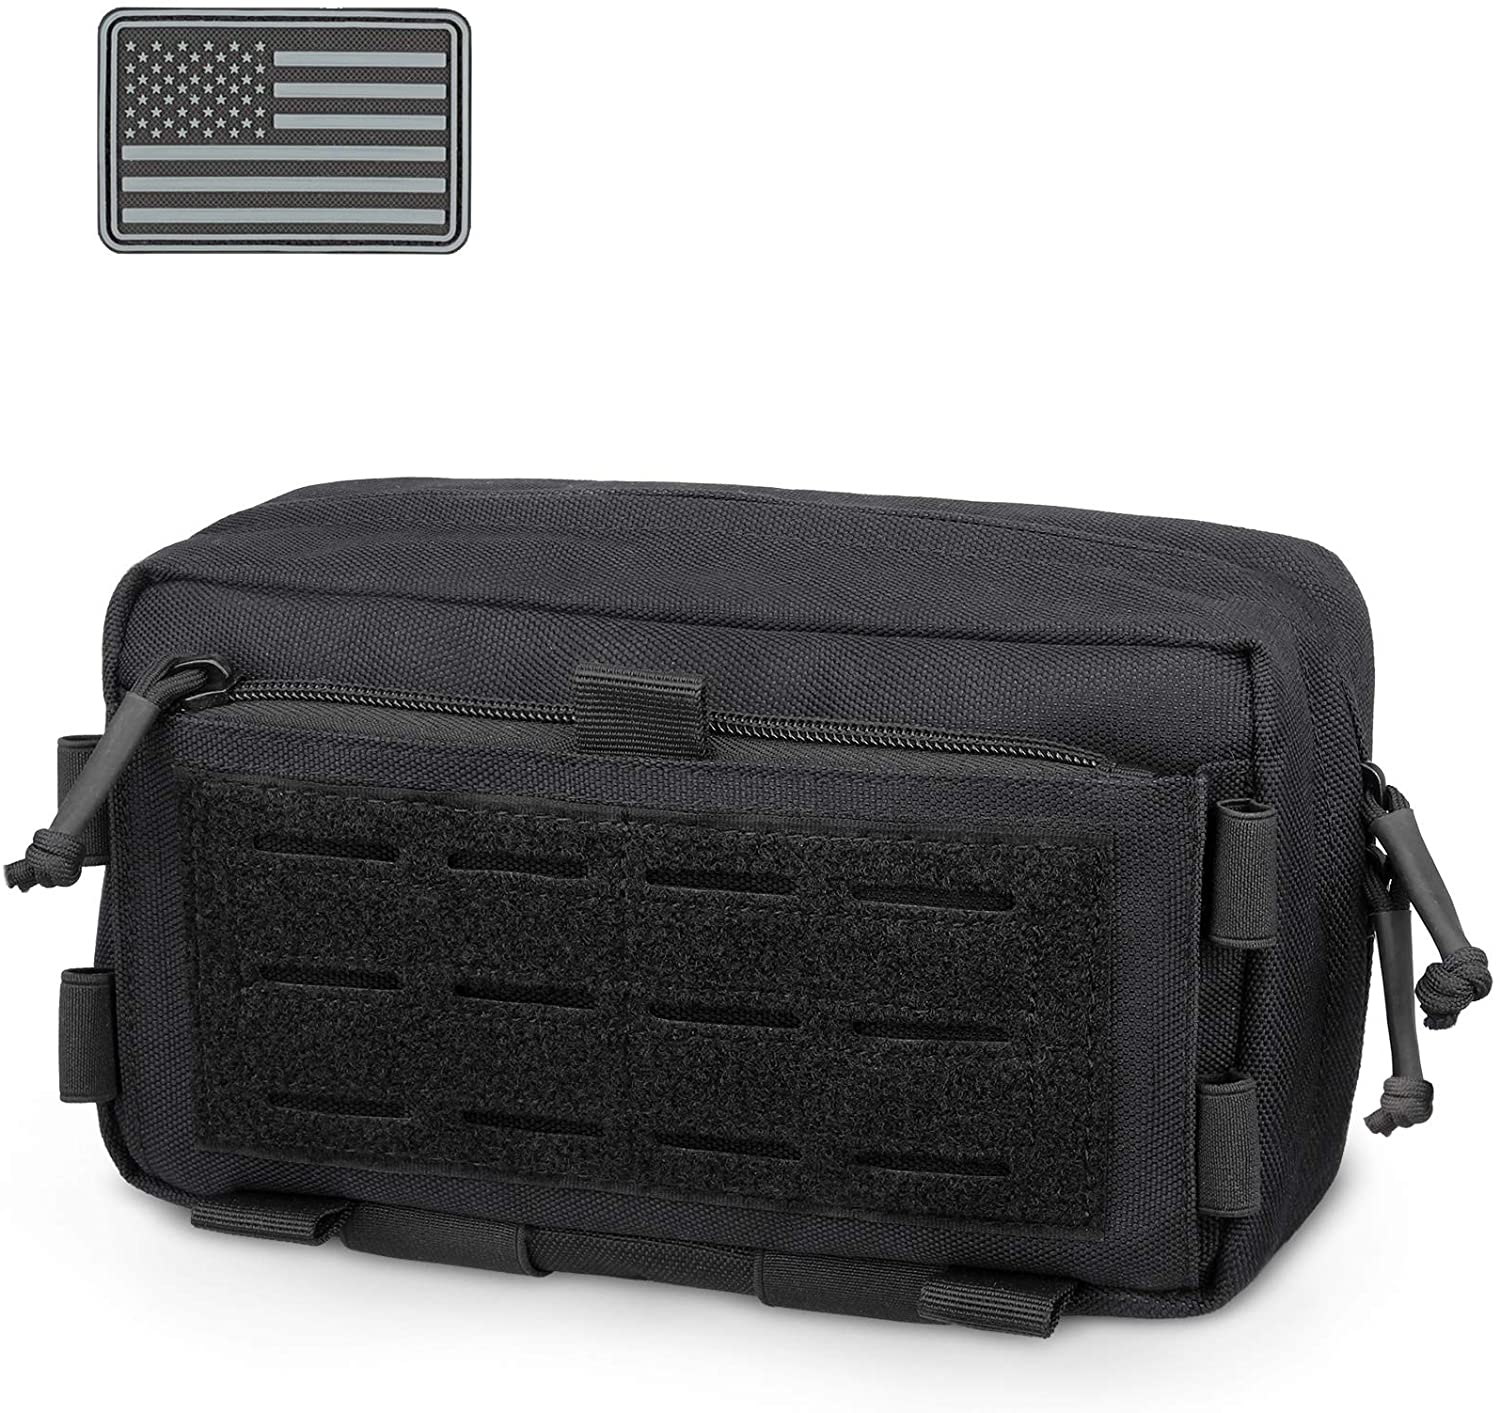 WYNEX Tactical MOLLE EDC Horizontal Desi Pouch Multi-Function Sales Spring new work of SALE items from new works